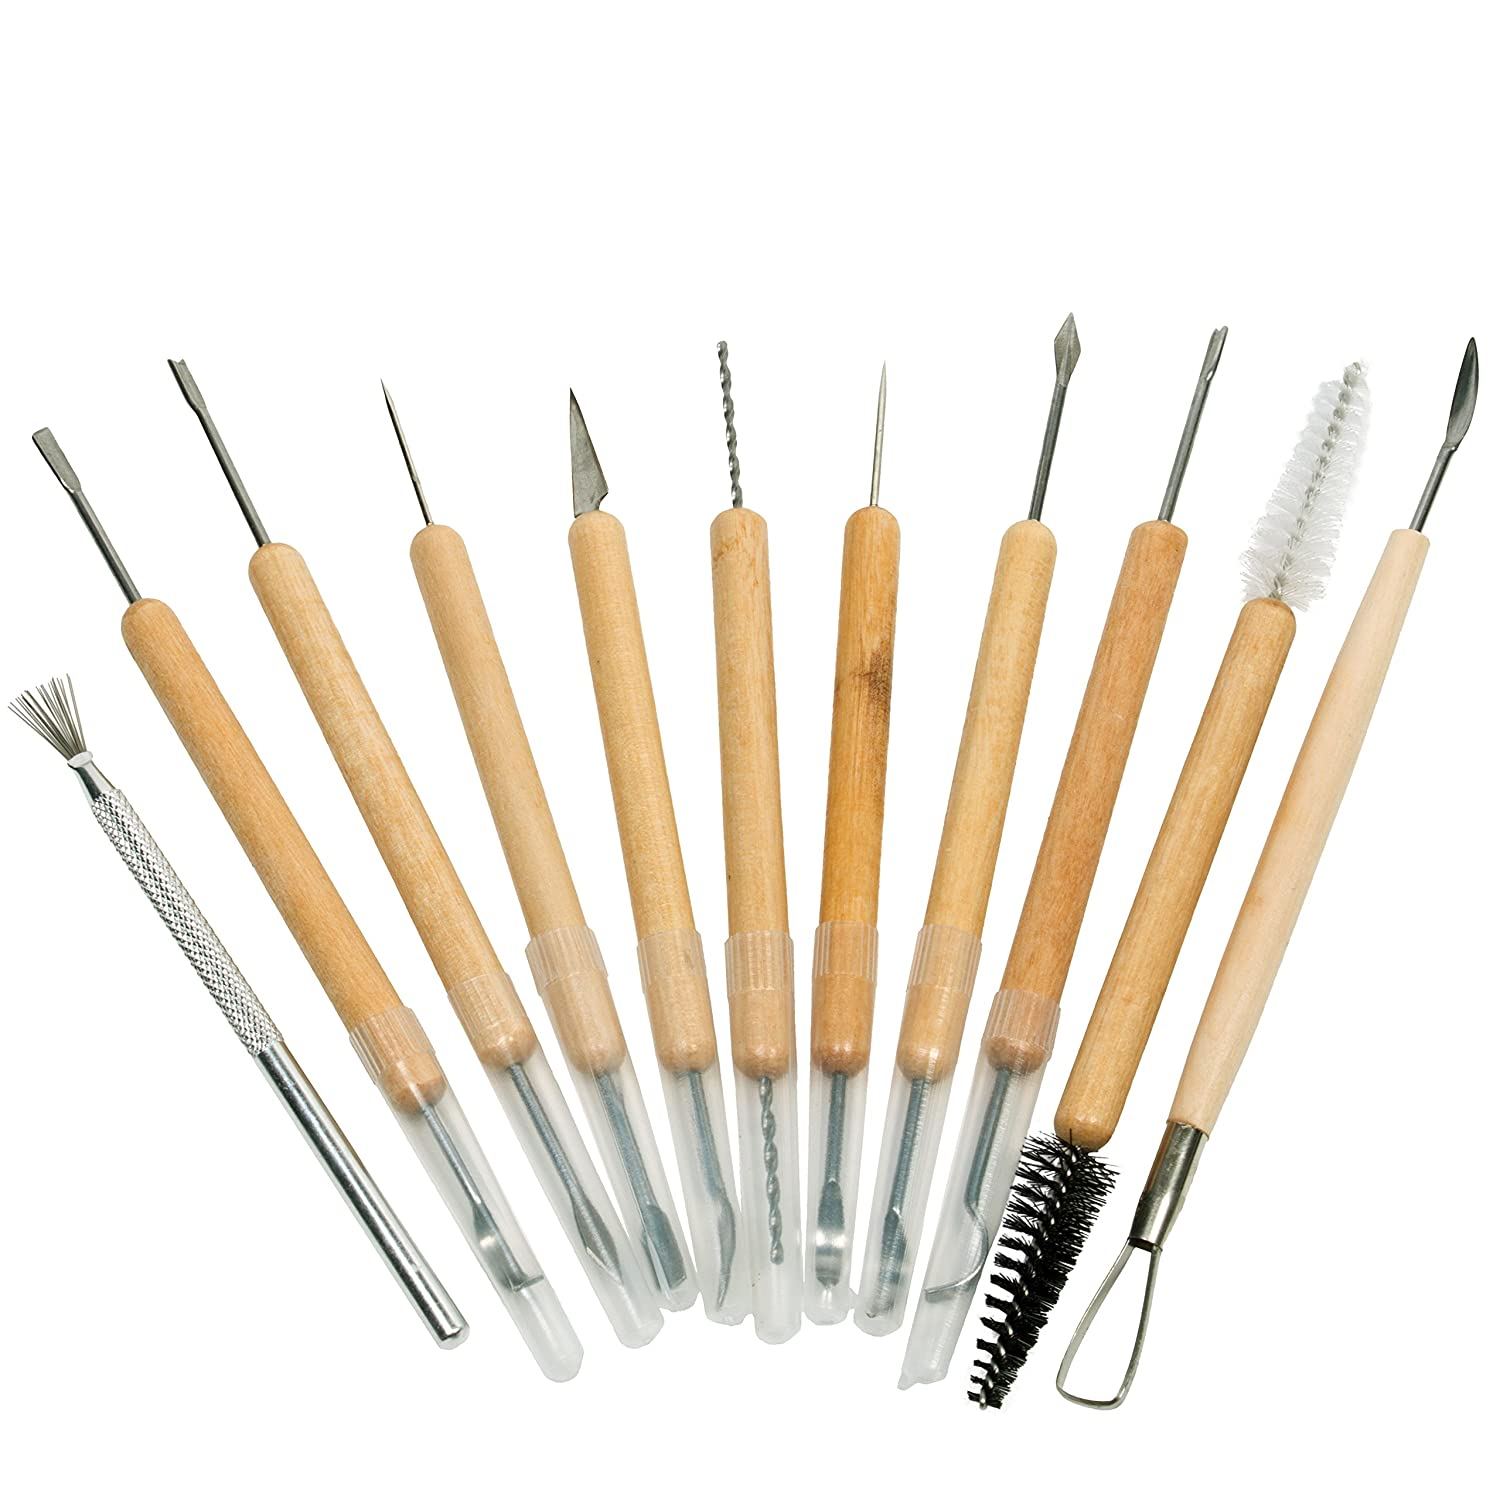 Sculpting Tools 15 Piece Deluxe Carving Clay Pottery Art Tools Set with Carrying Case